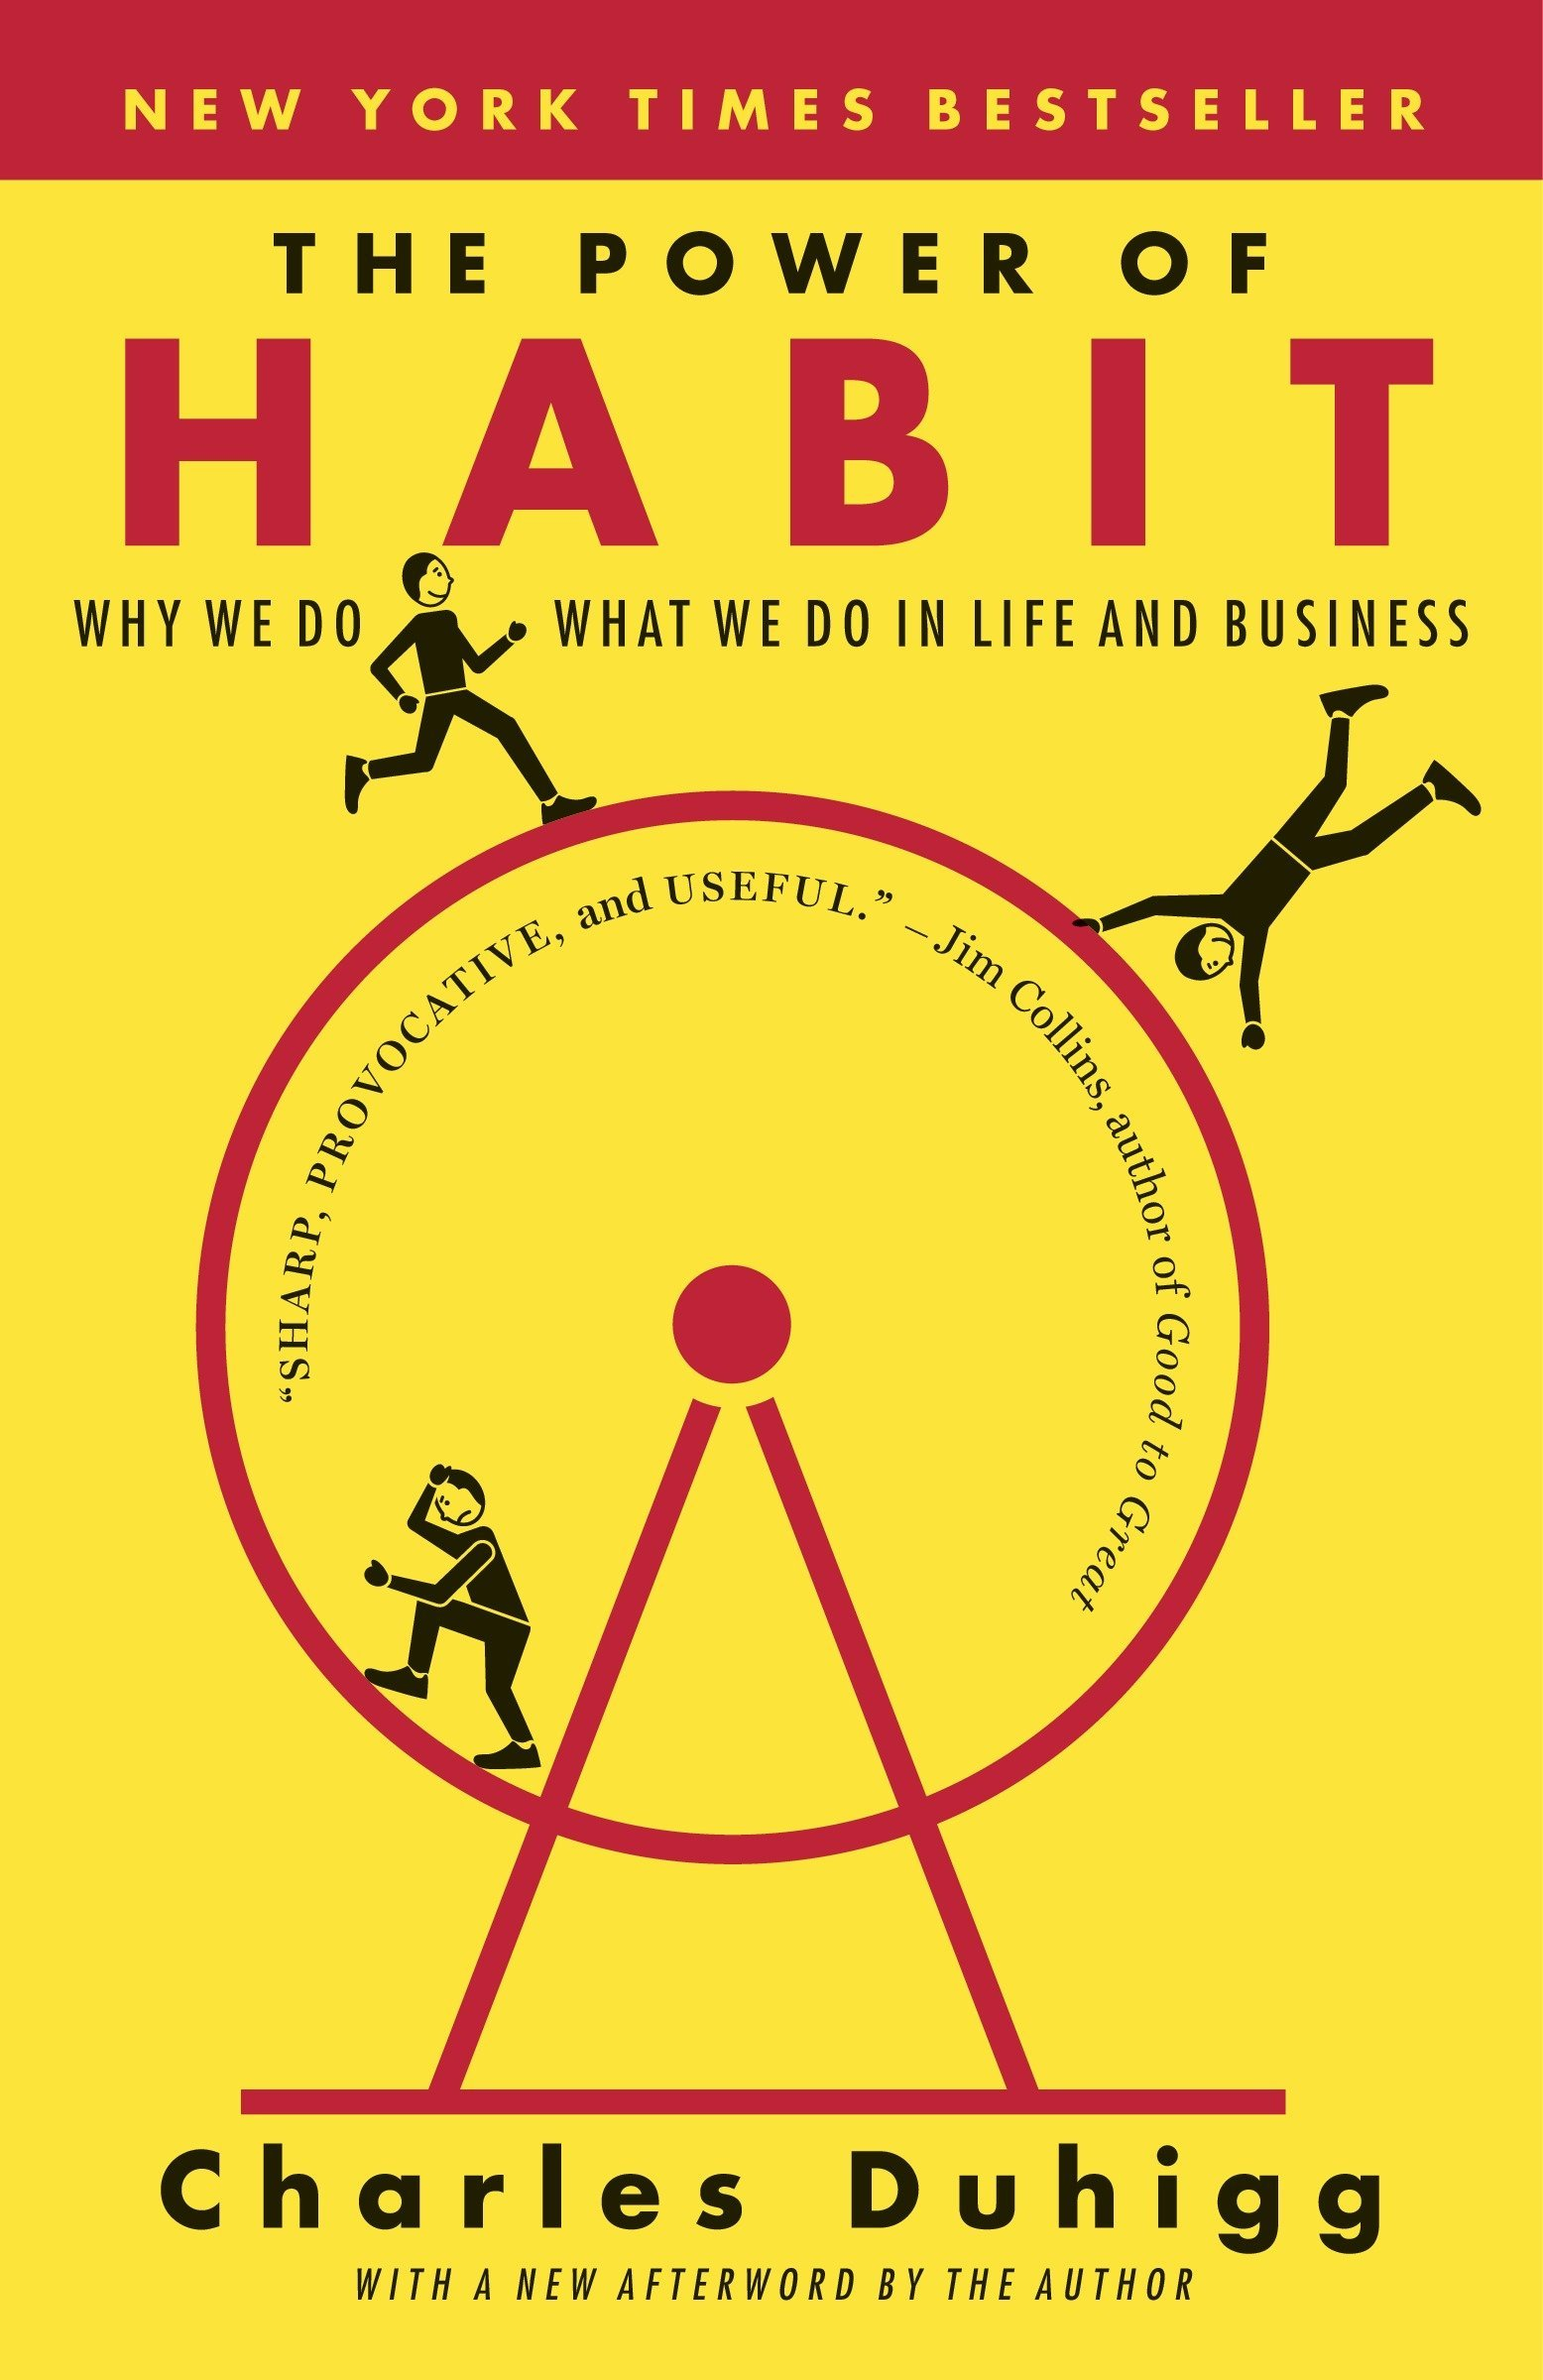 Charles Duhigg – The Power of Habit